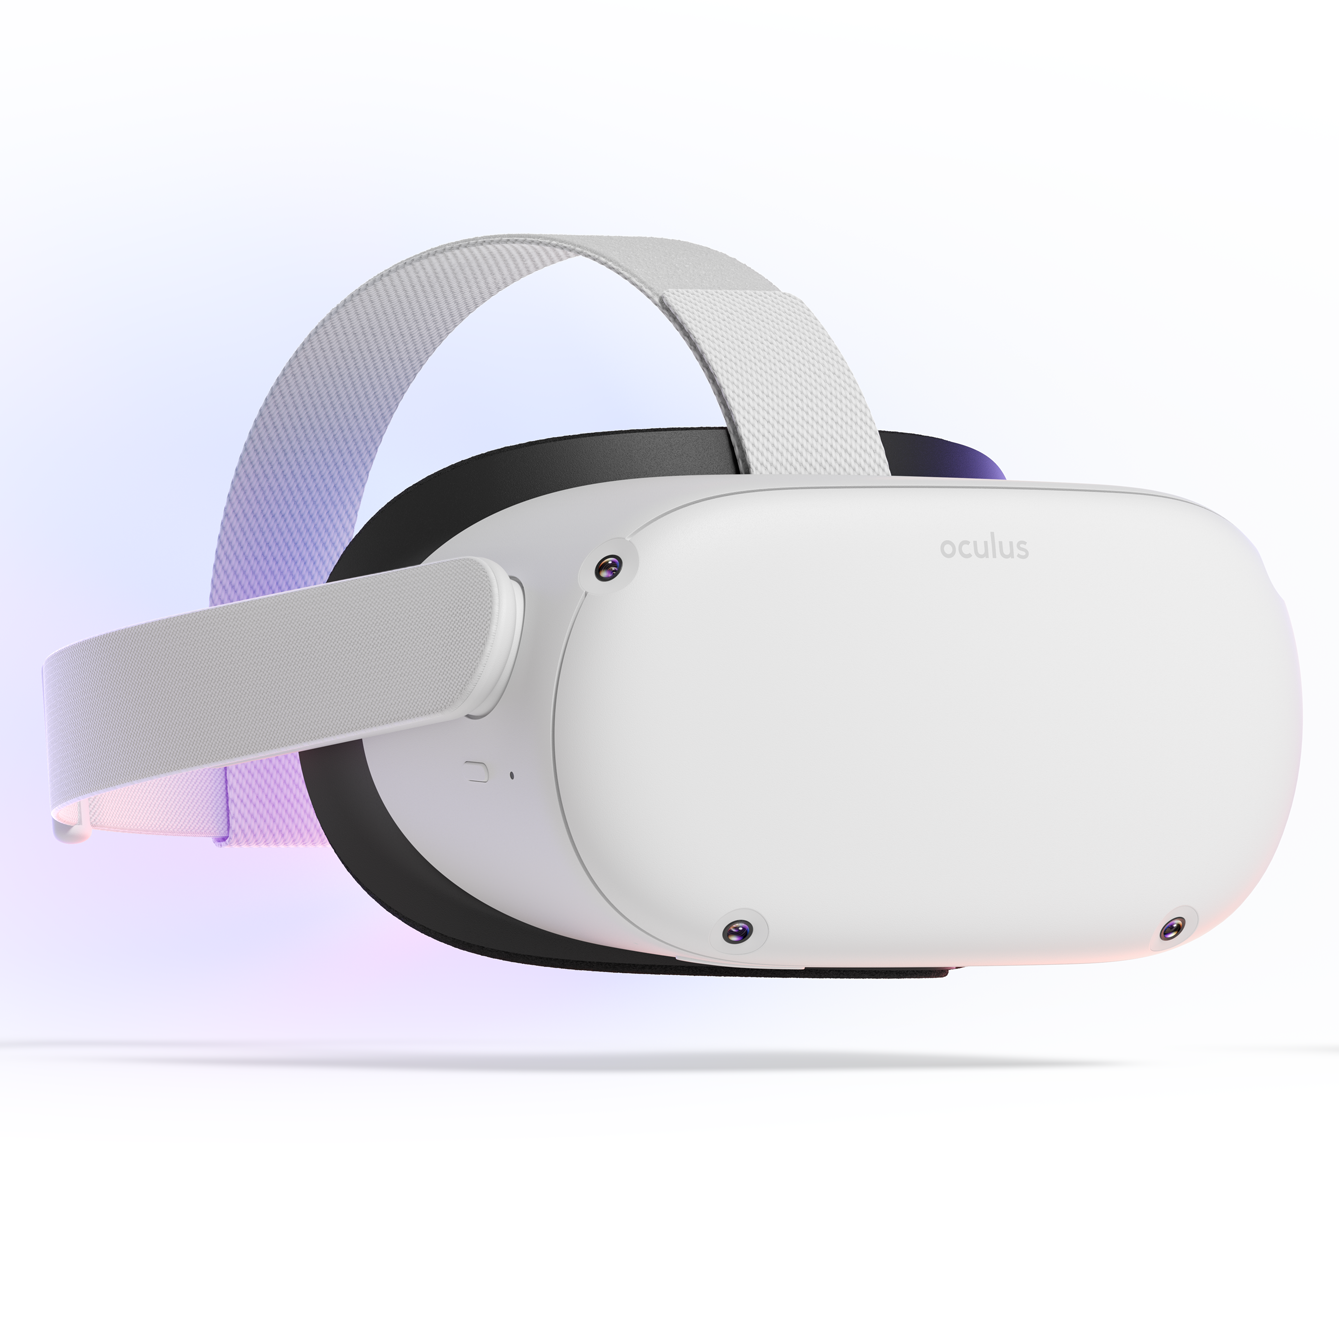 Oculus Quest 2 and Quest